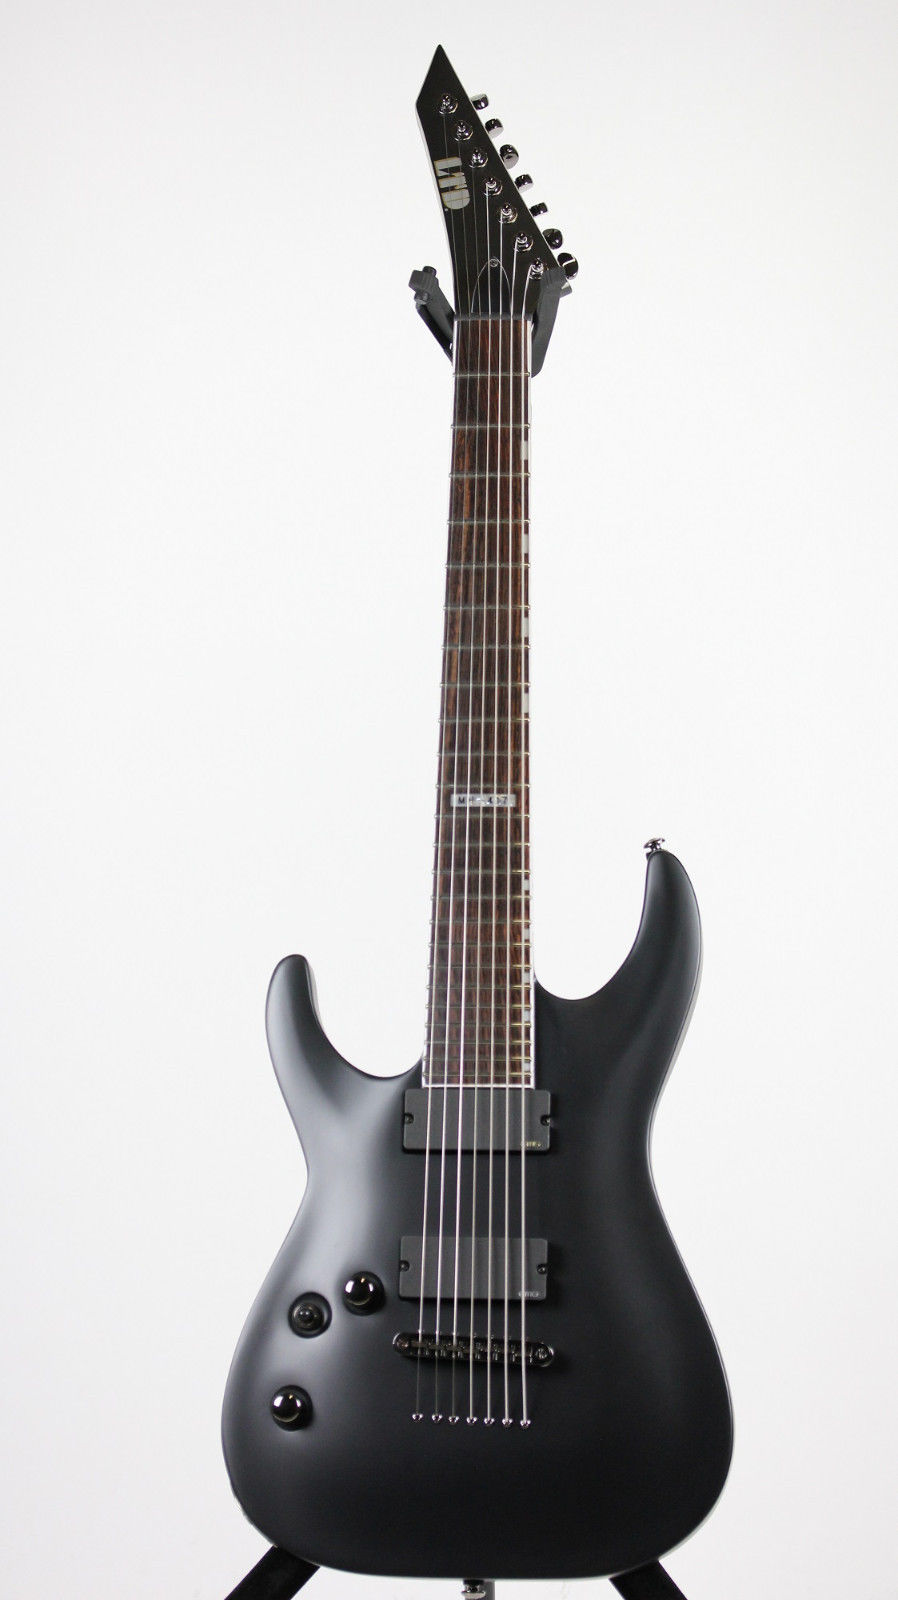 ESP LTD MH-417 BLKS LH TLD MH Standard 7-String Electric Guitar with Left Handed Design and Black Satin Finish